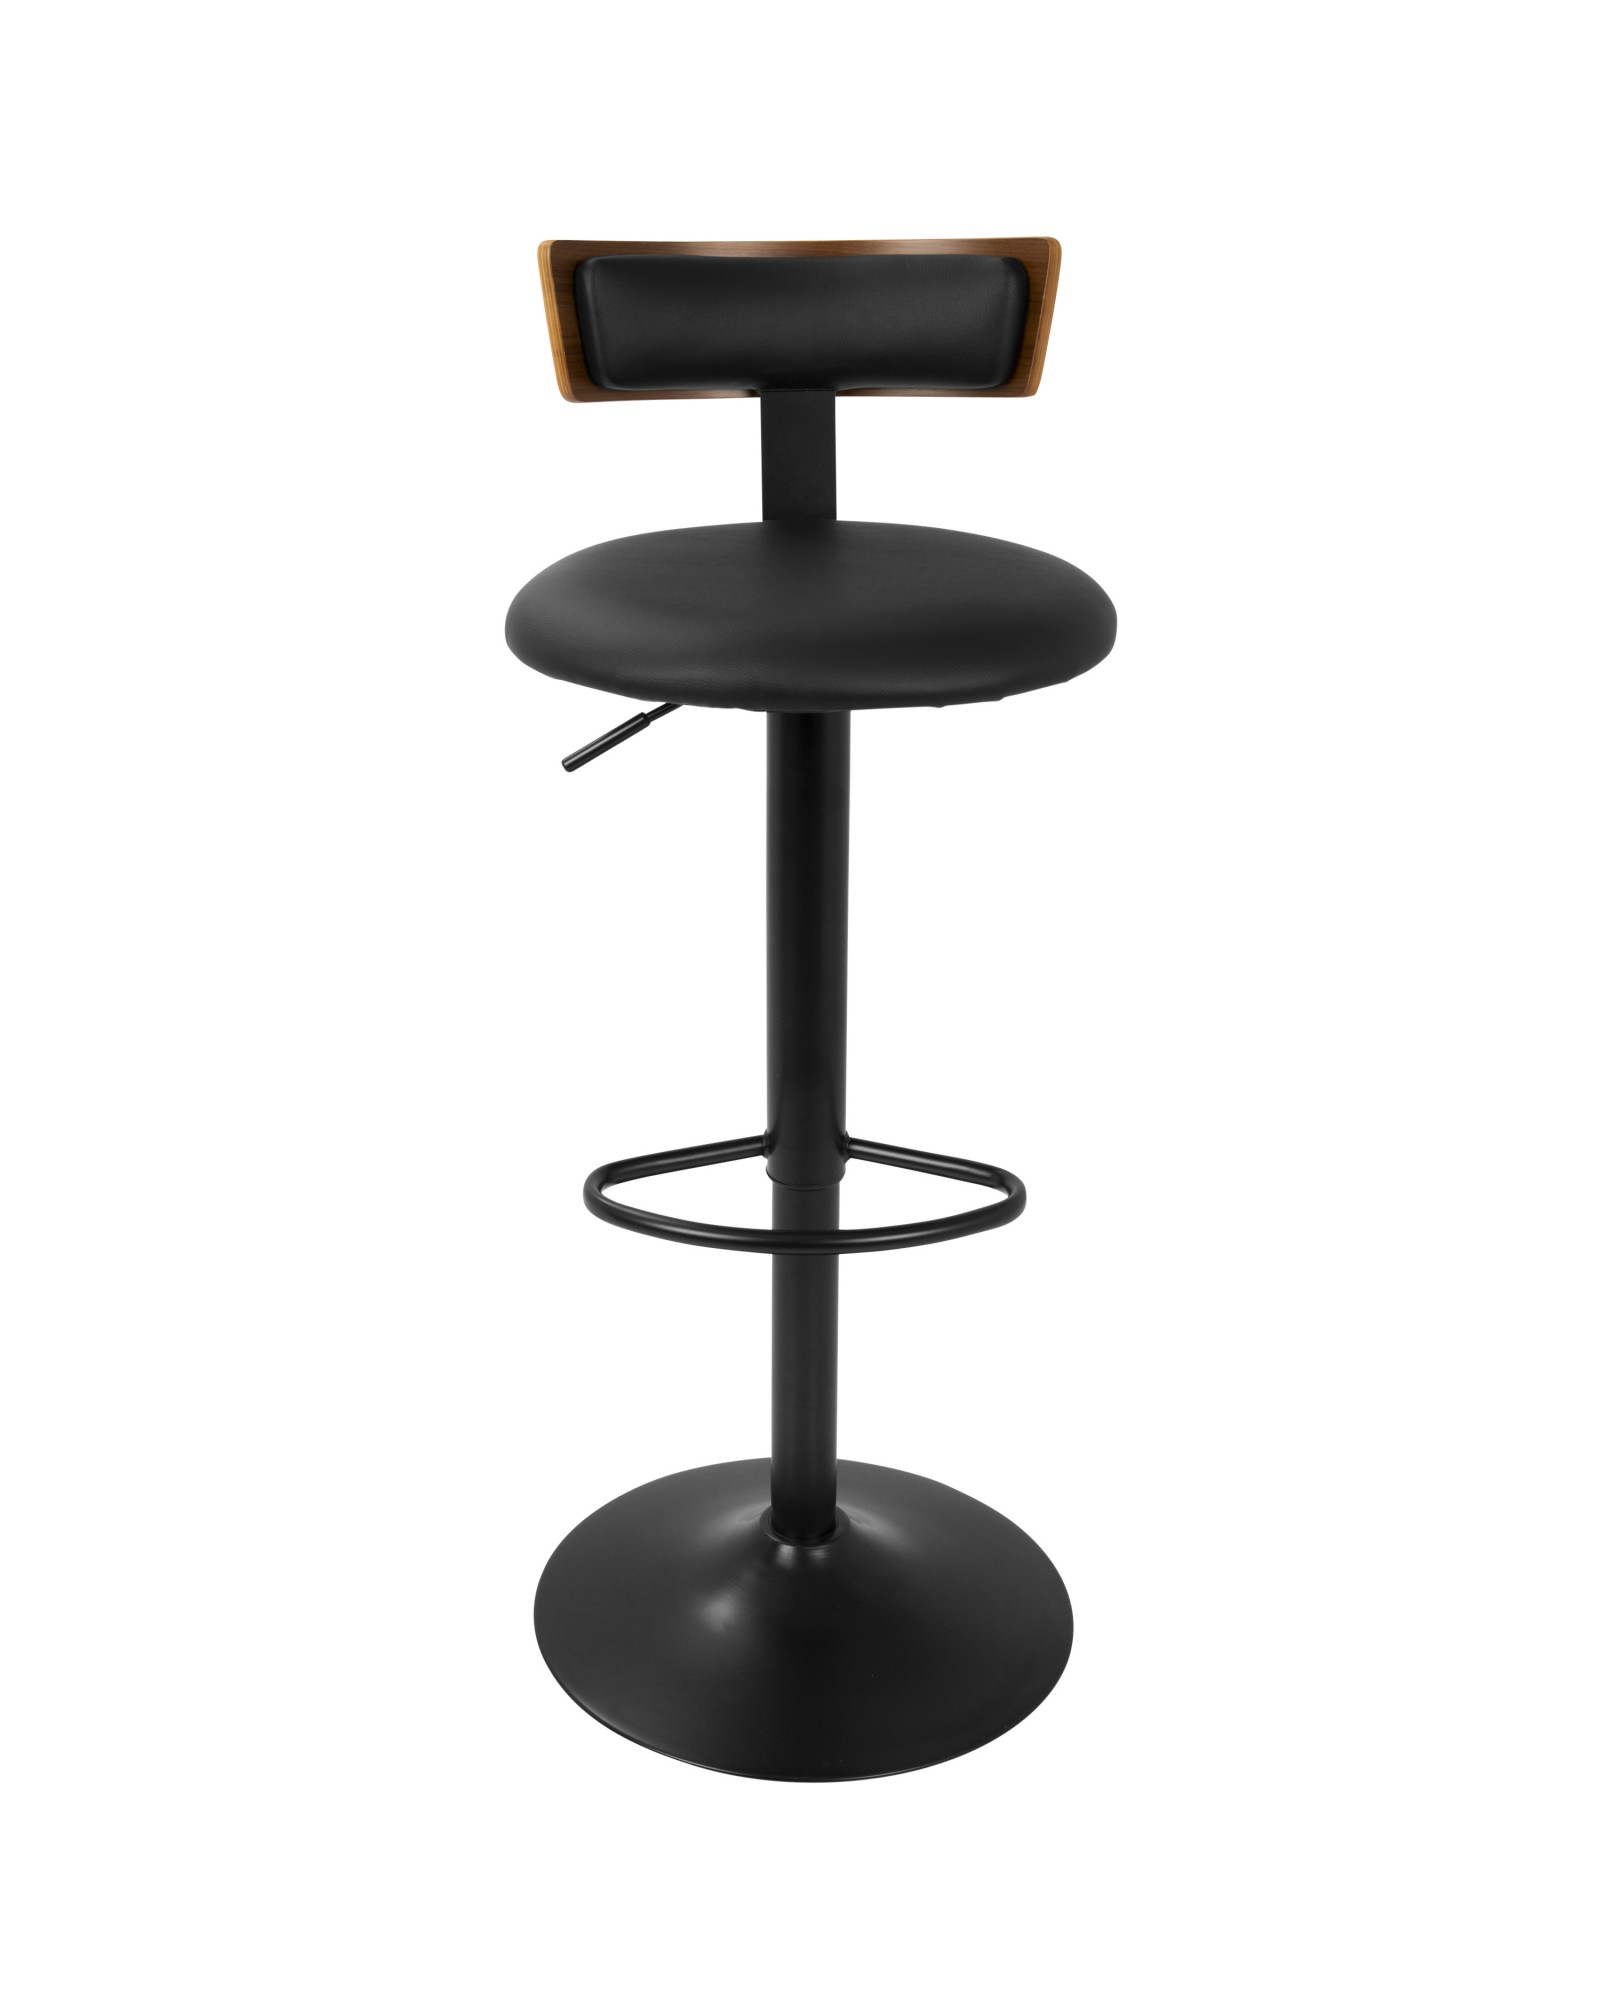 Weller Contemporary Barstool with Black Frame, Walnut Wood, and Black Faux Leather